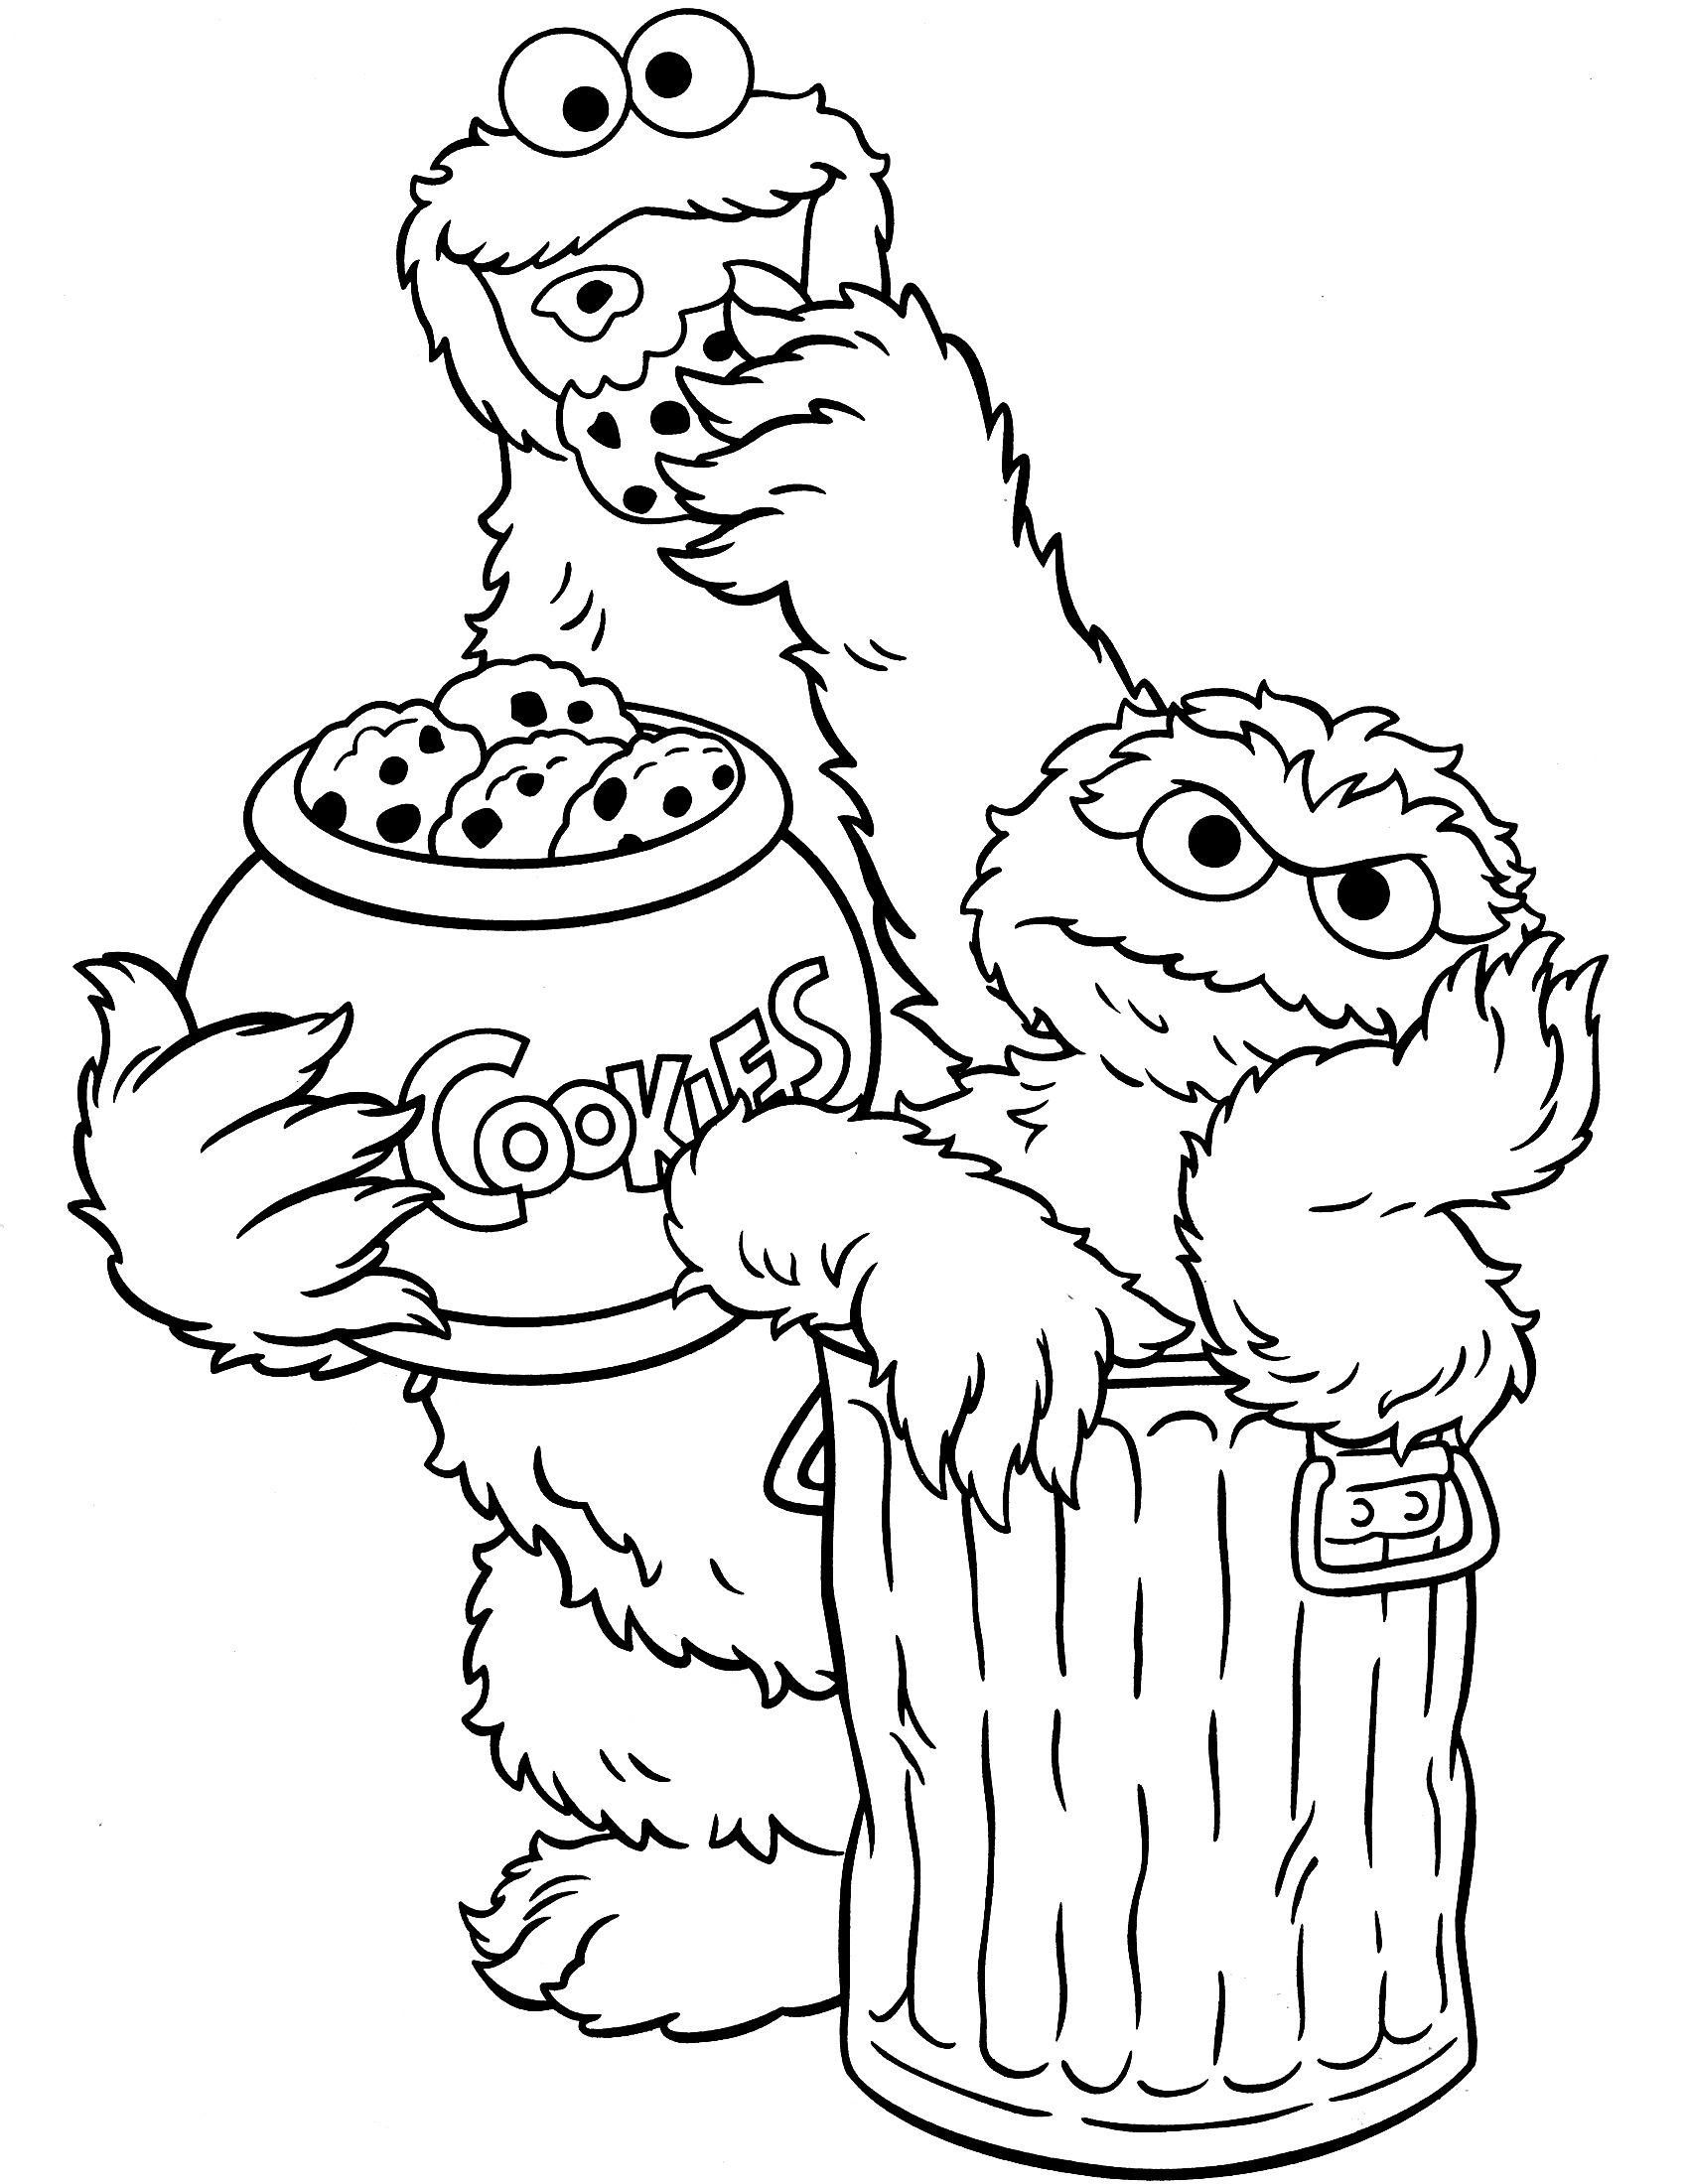 Sesame Street Coloring Pages Google Search Seseme Party